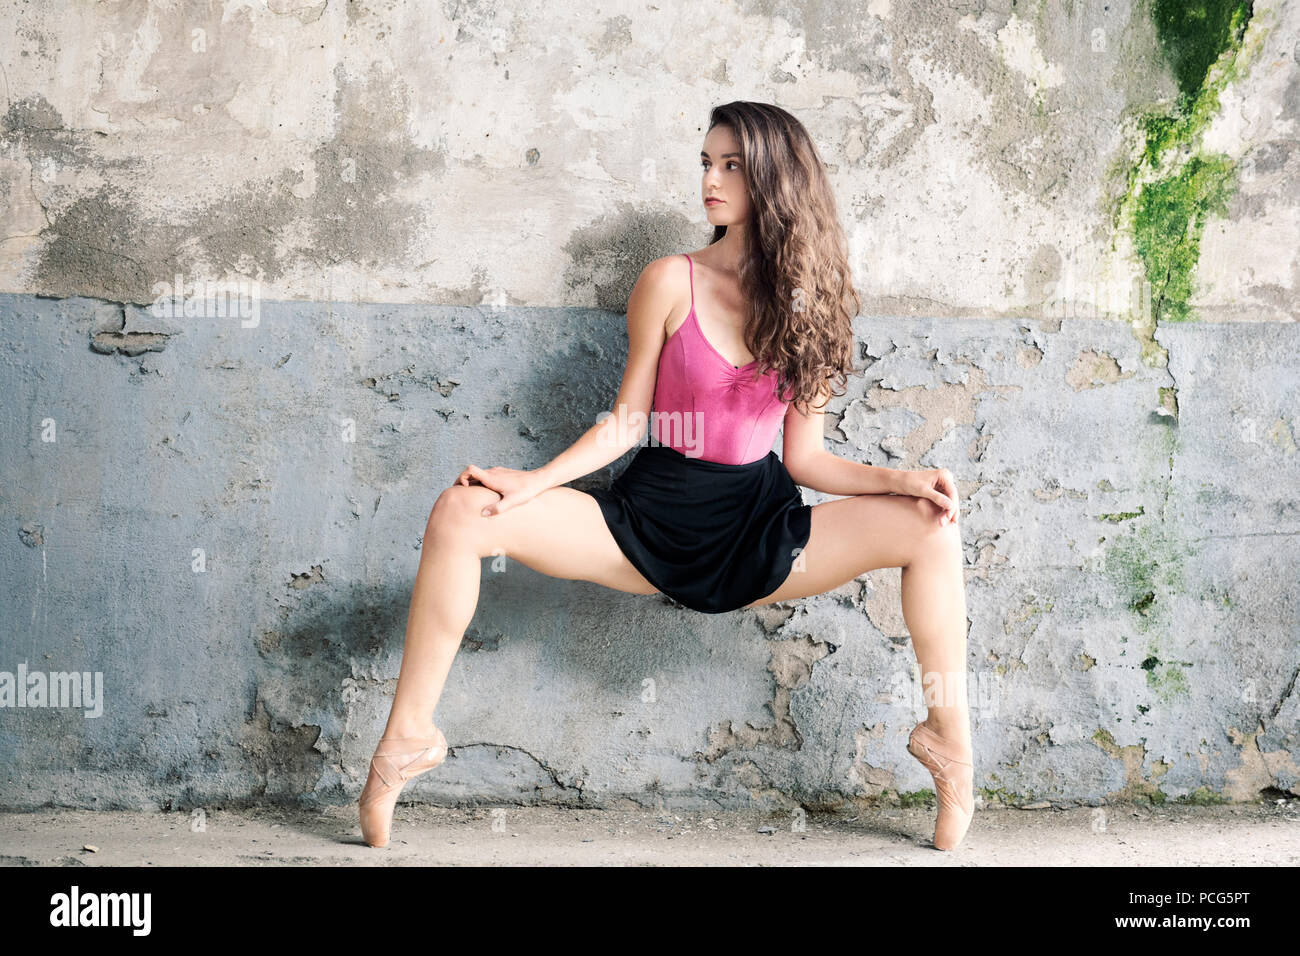 Ballerina On Pointe Looking Away In Abandoned Building Stock Photo Alamy